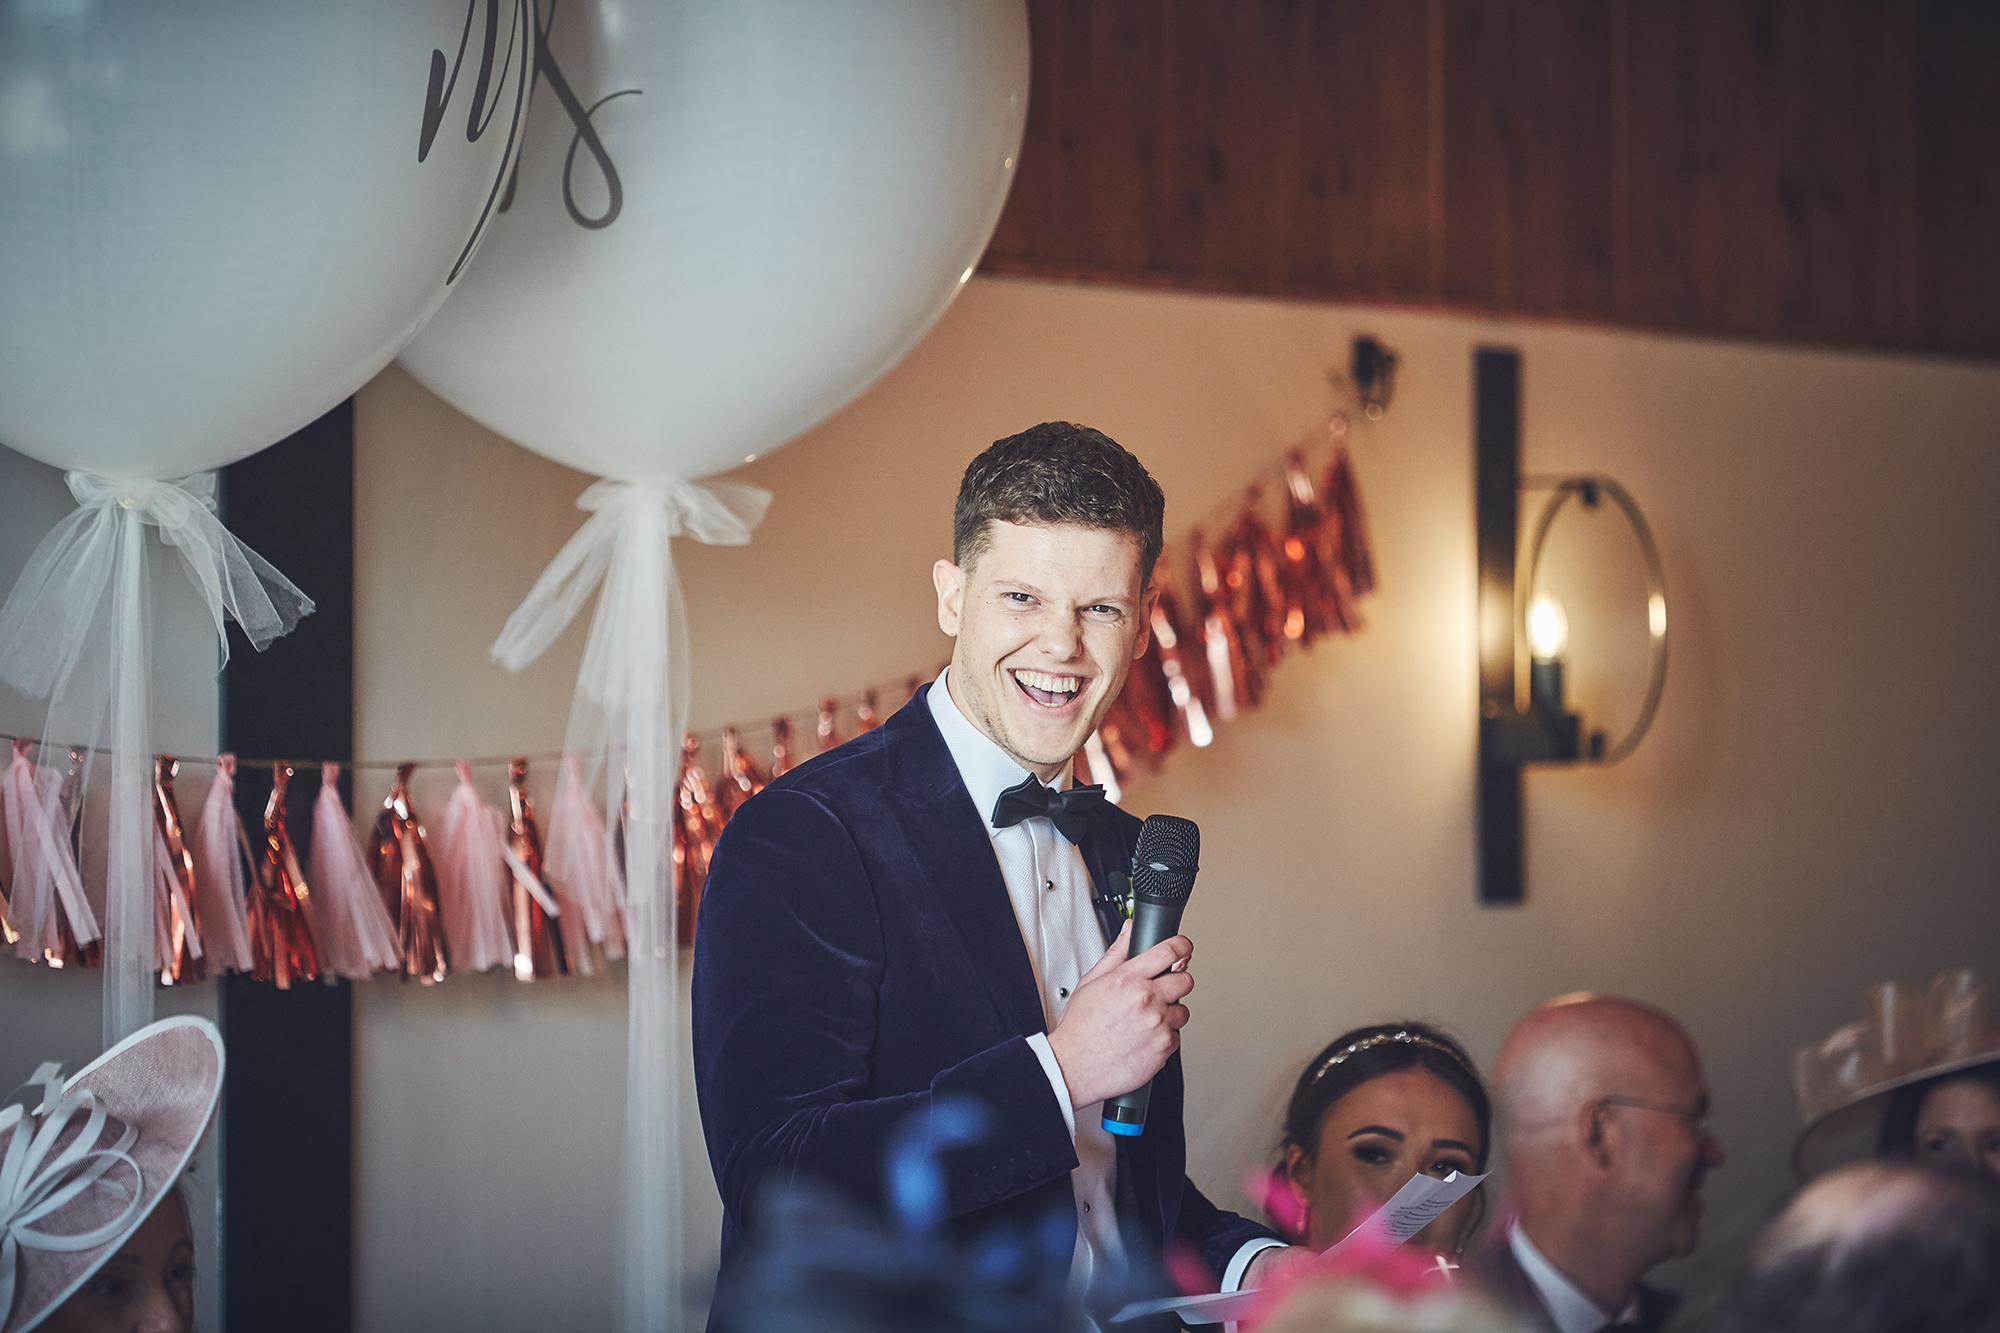 Groom gives broad smile as he delivers speech with mic in hand.